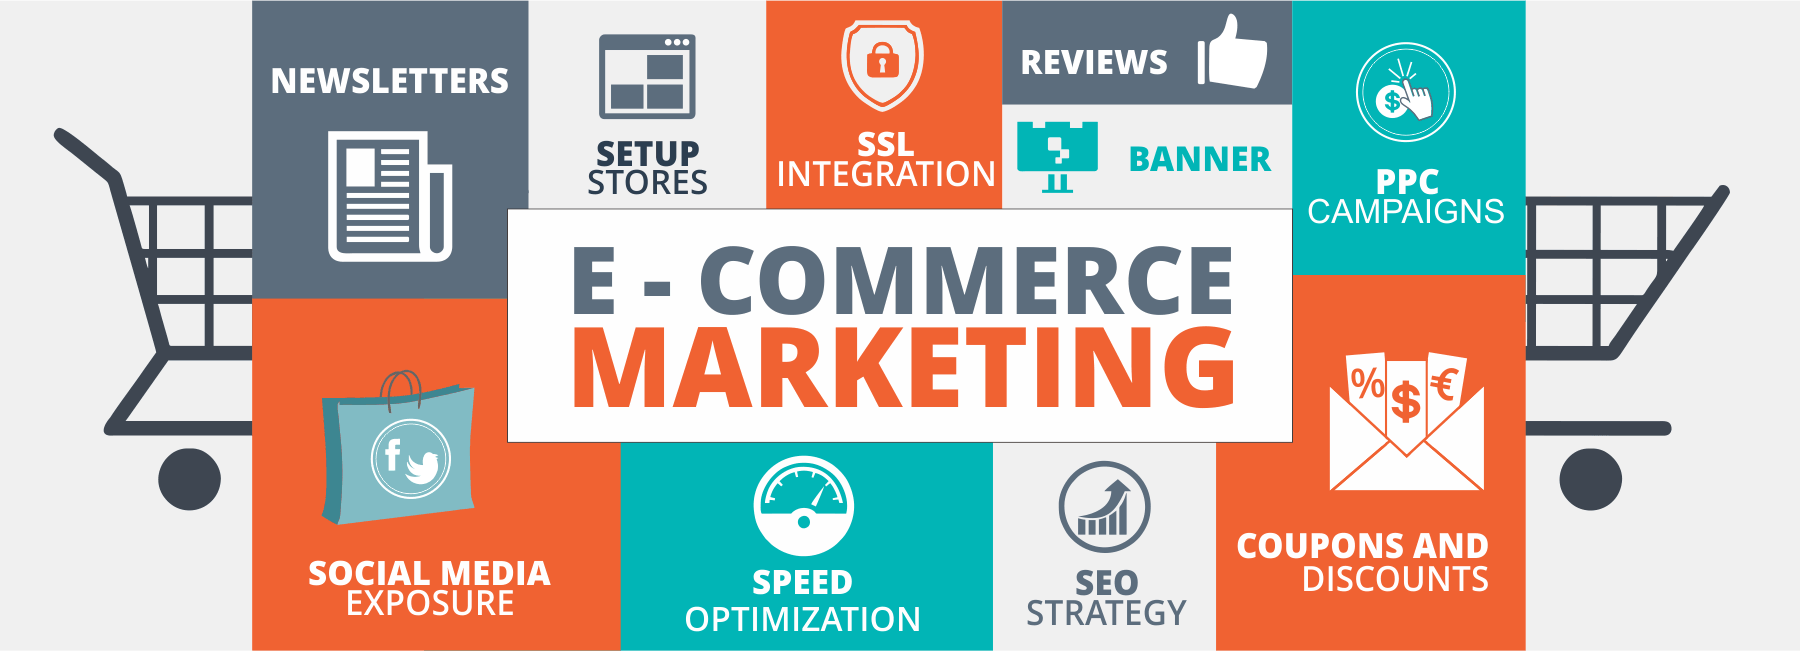 Digital-marketing-strategy-for-e-commerce-websites